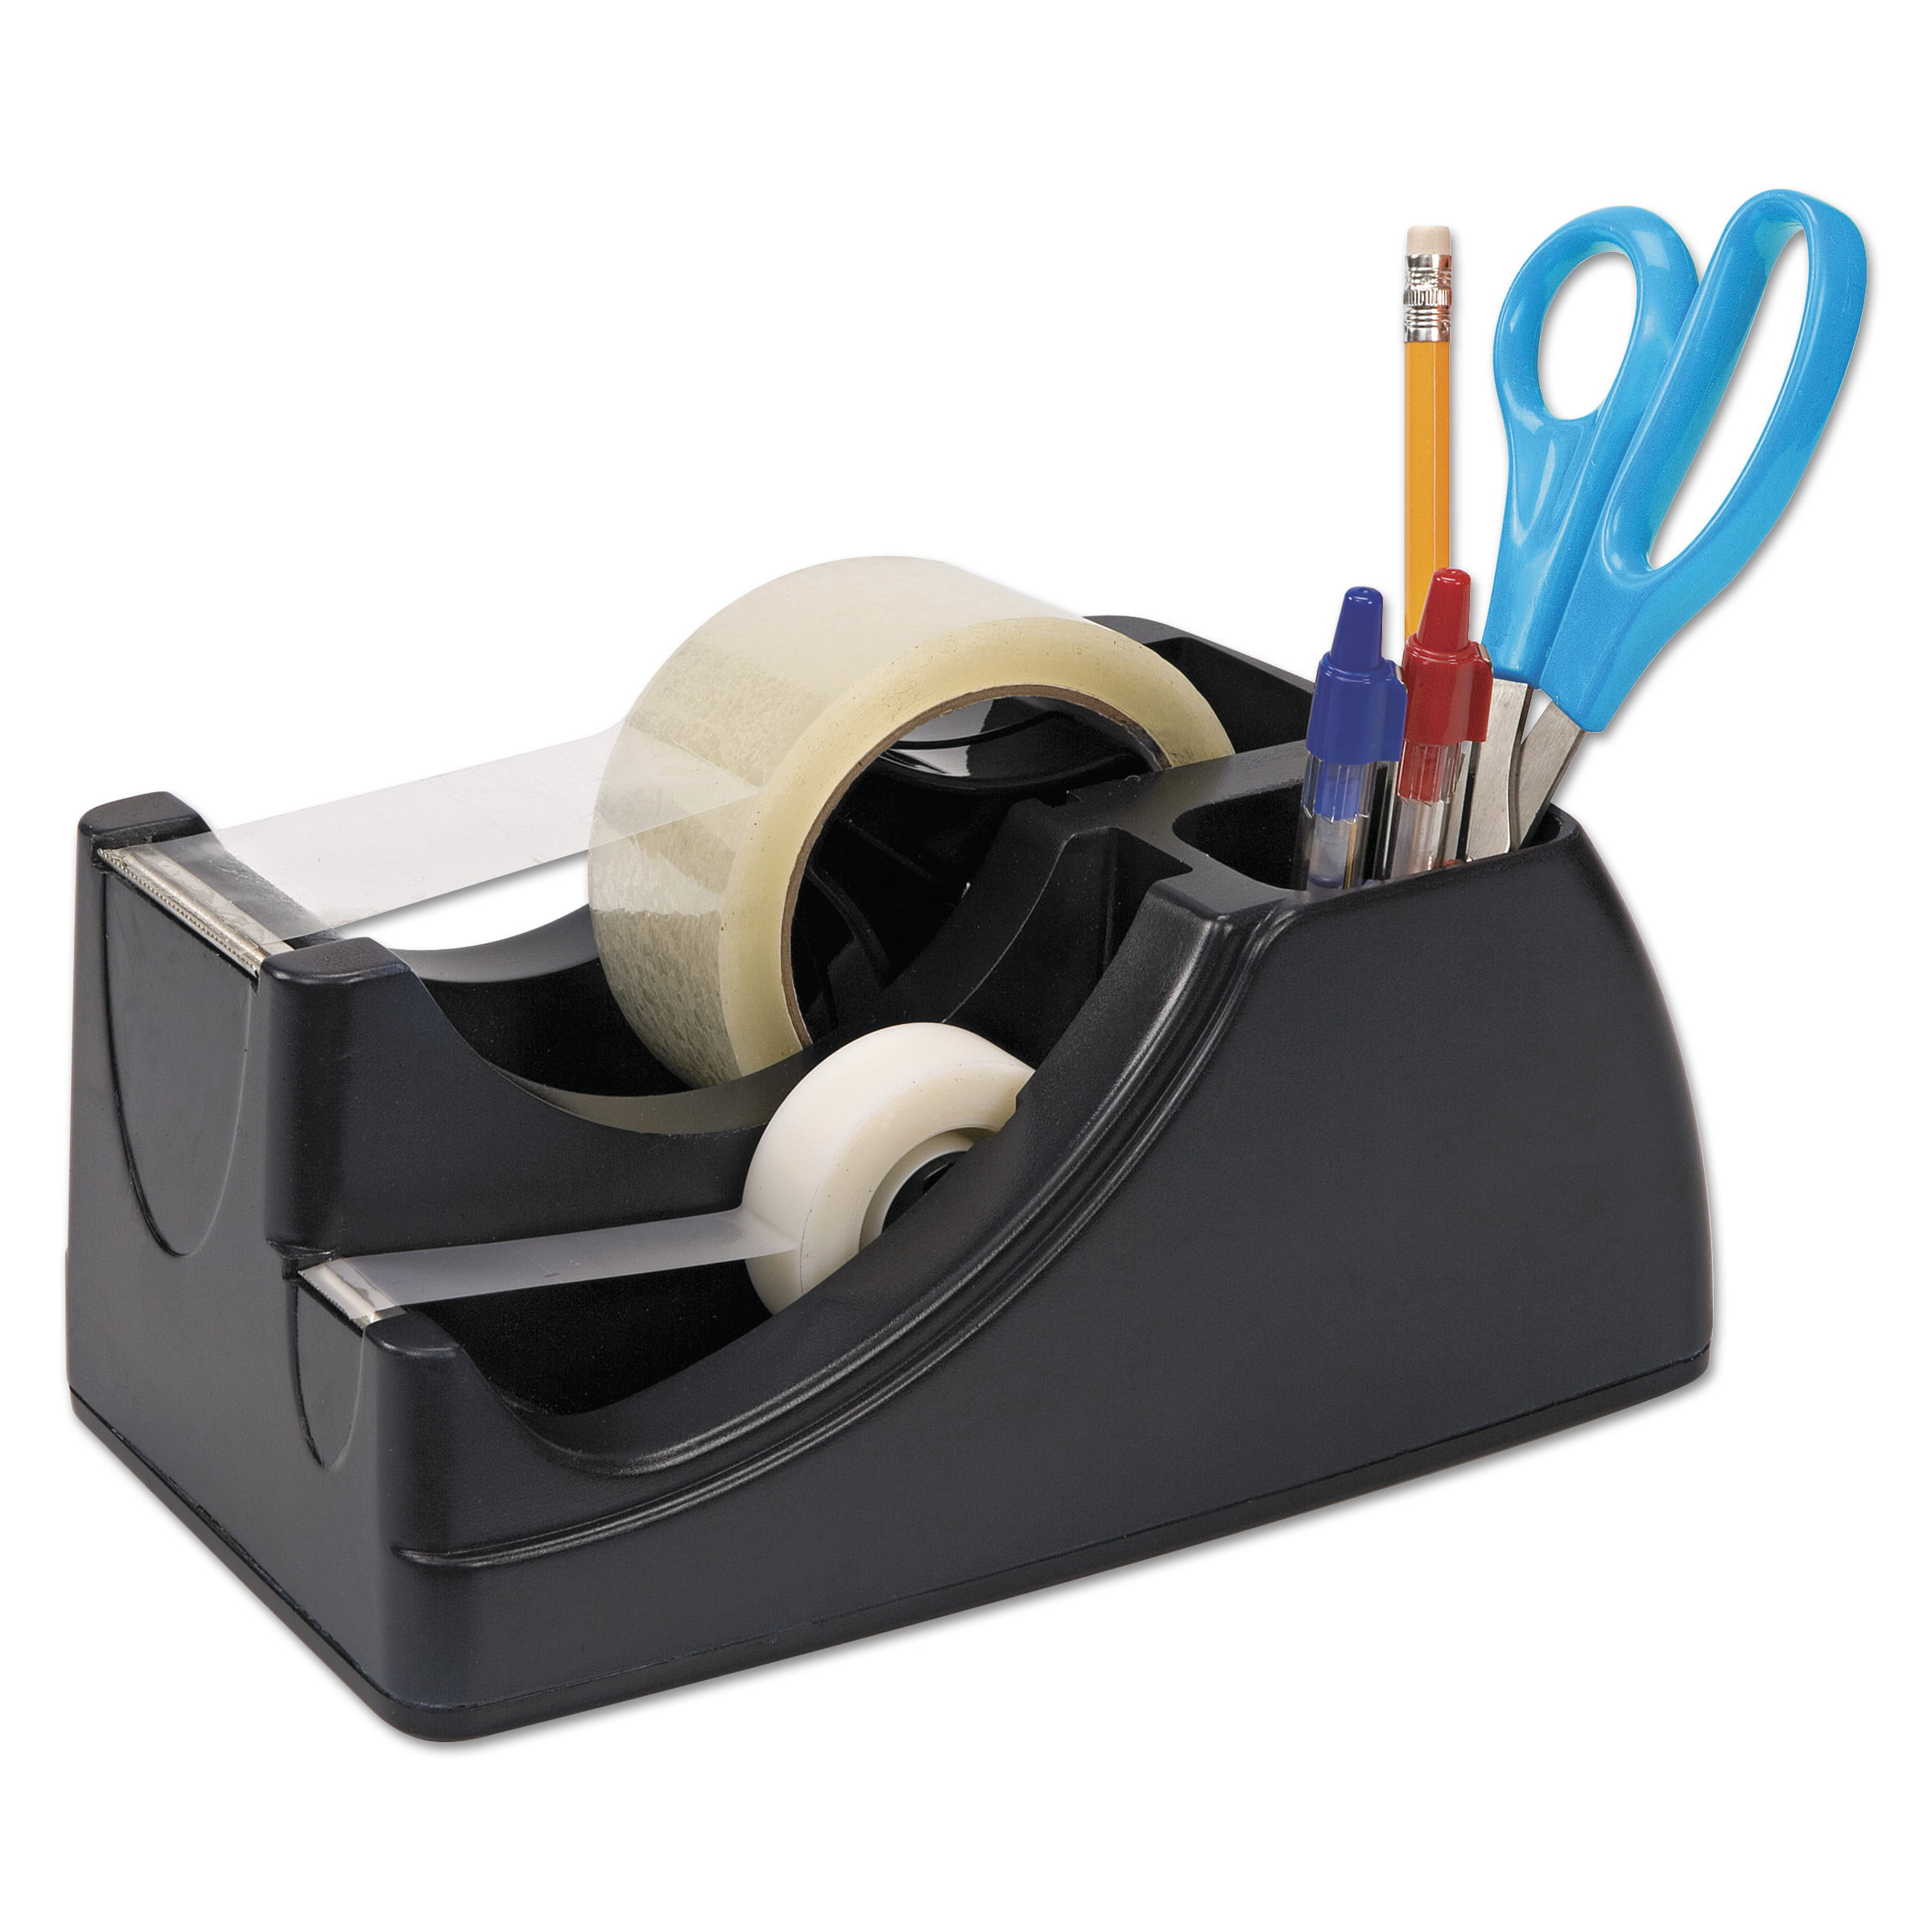 Officemate OIC Recycled 2-In-1 Heavy Duty Tape Dispenser, Black (96690) by Officemate International Corp.